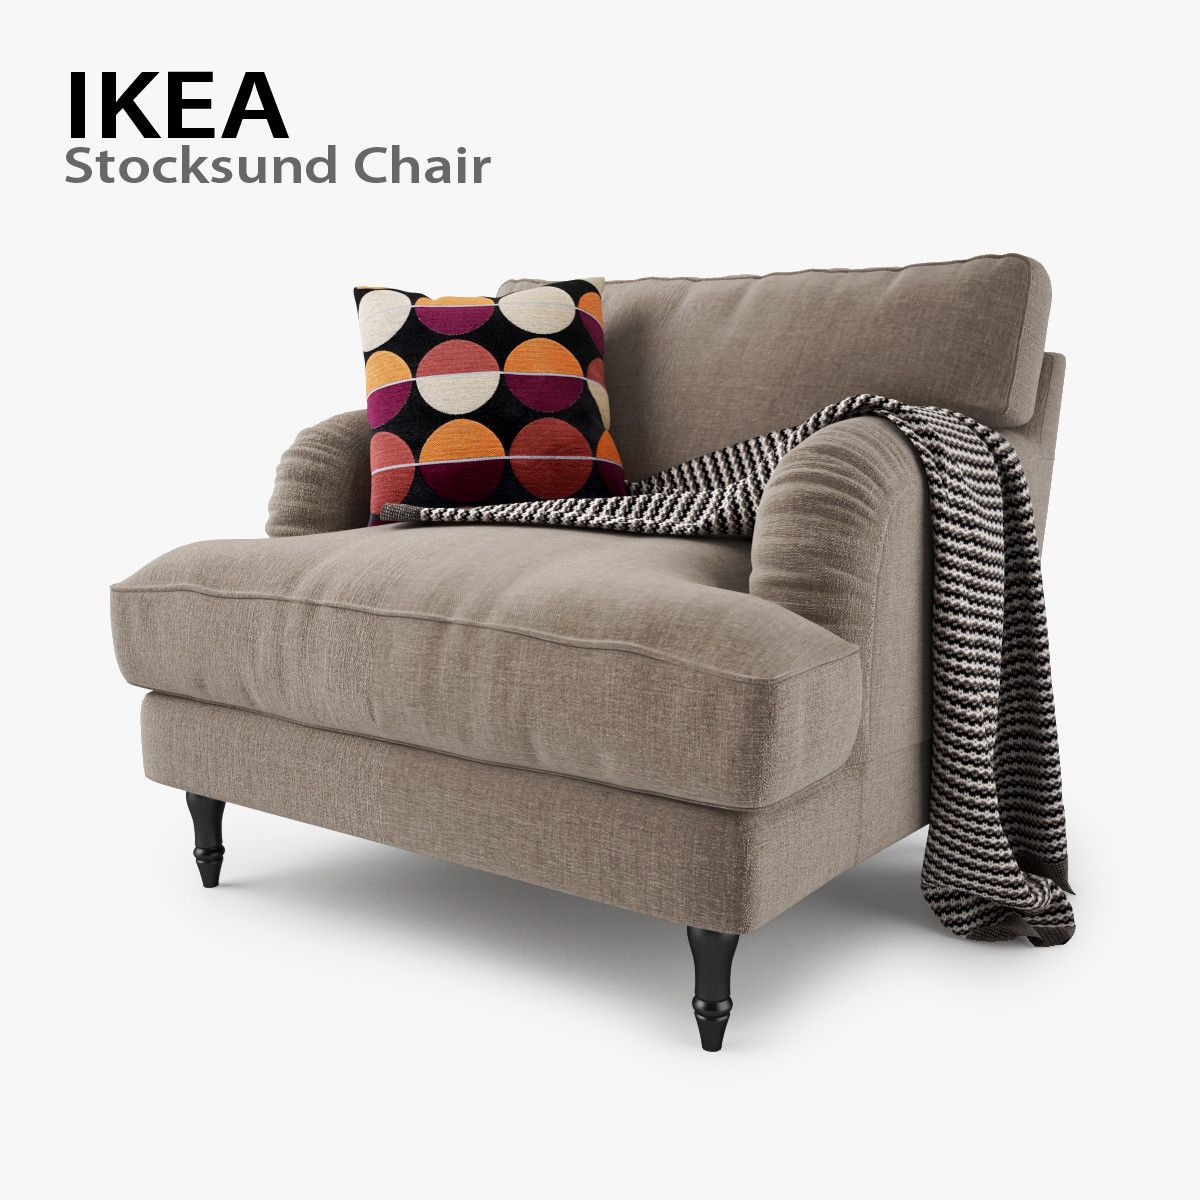 ikea stocksund chair seat 3d max Ikea stocksund, Comfy